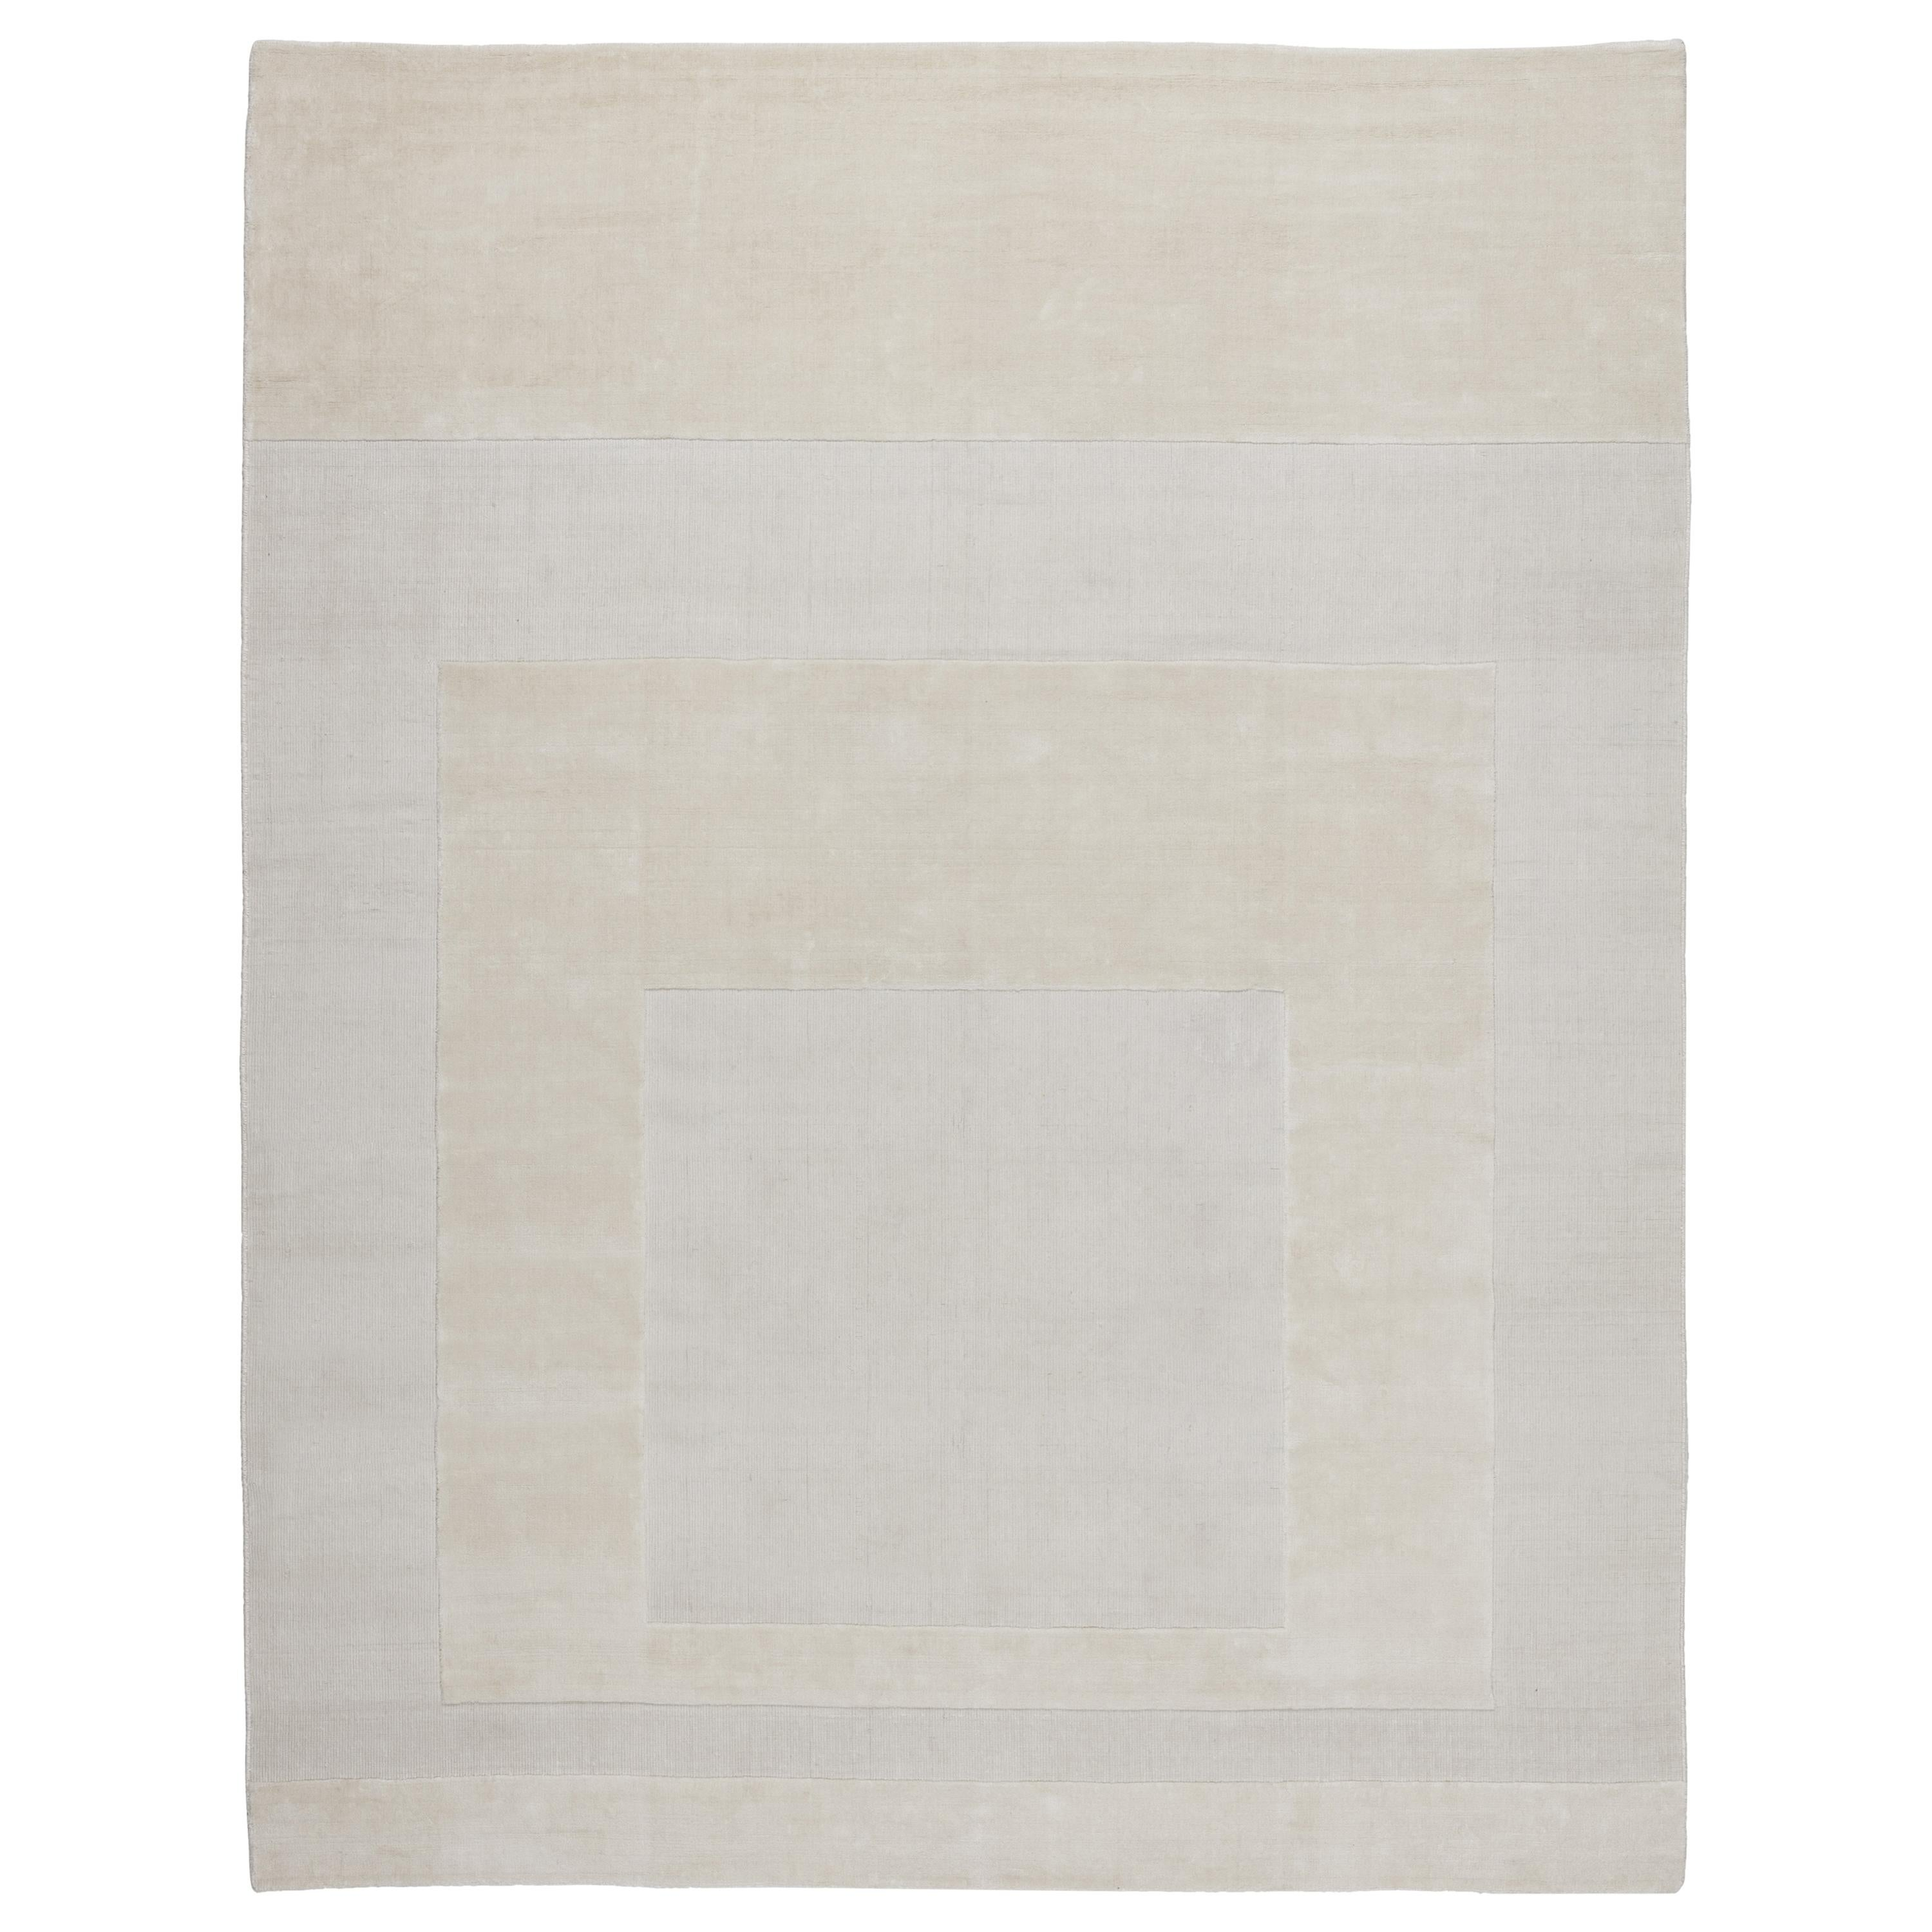 CC-Tapis Cut Out 2.0 Linen Rug by A. Parisotto and M. Formenton